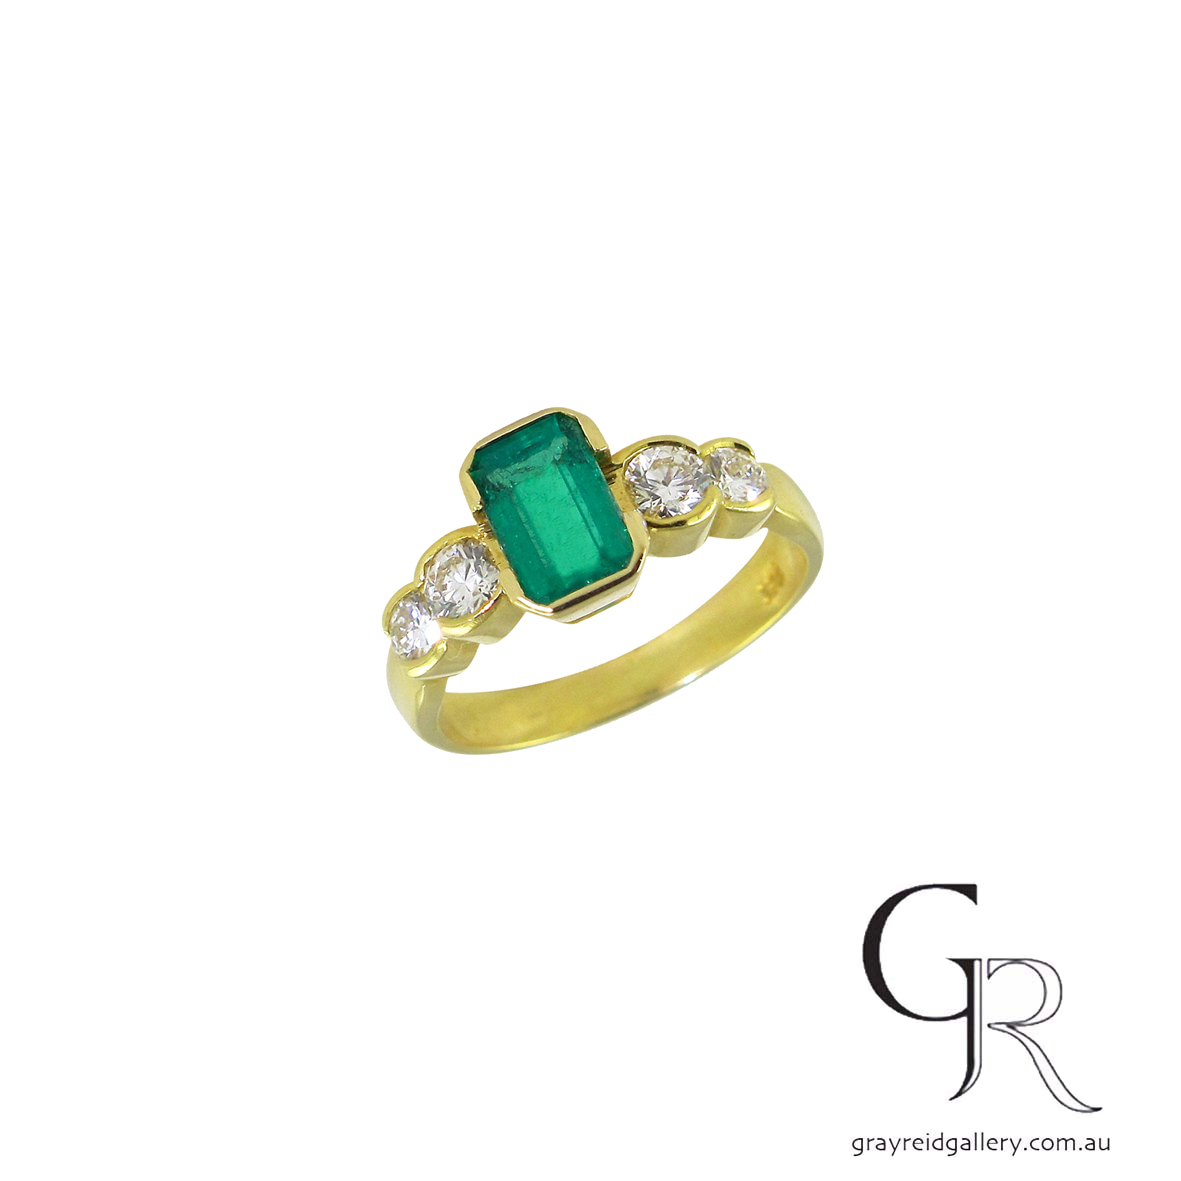 emerald and diamond engagrement ring yellow gold melbourne gray reid gallery.jpg